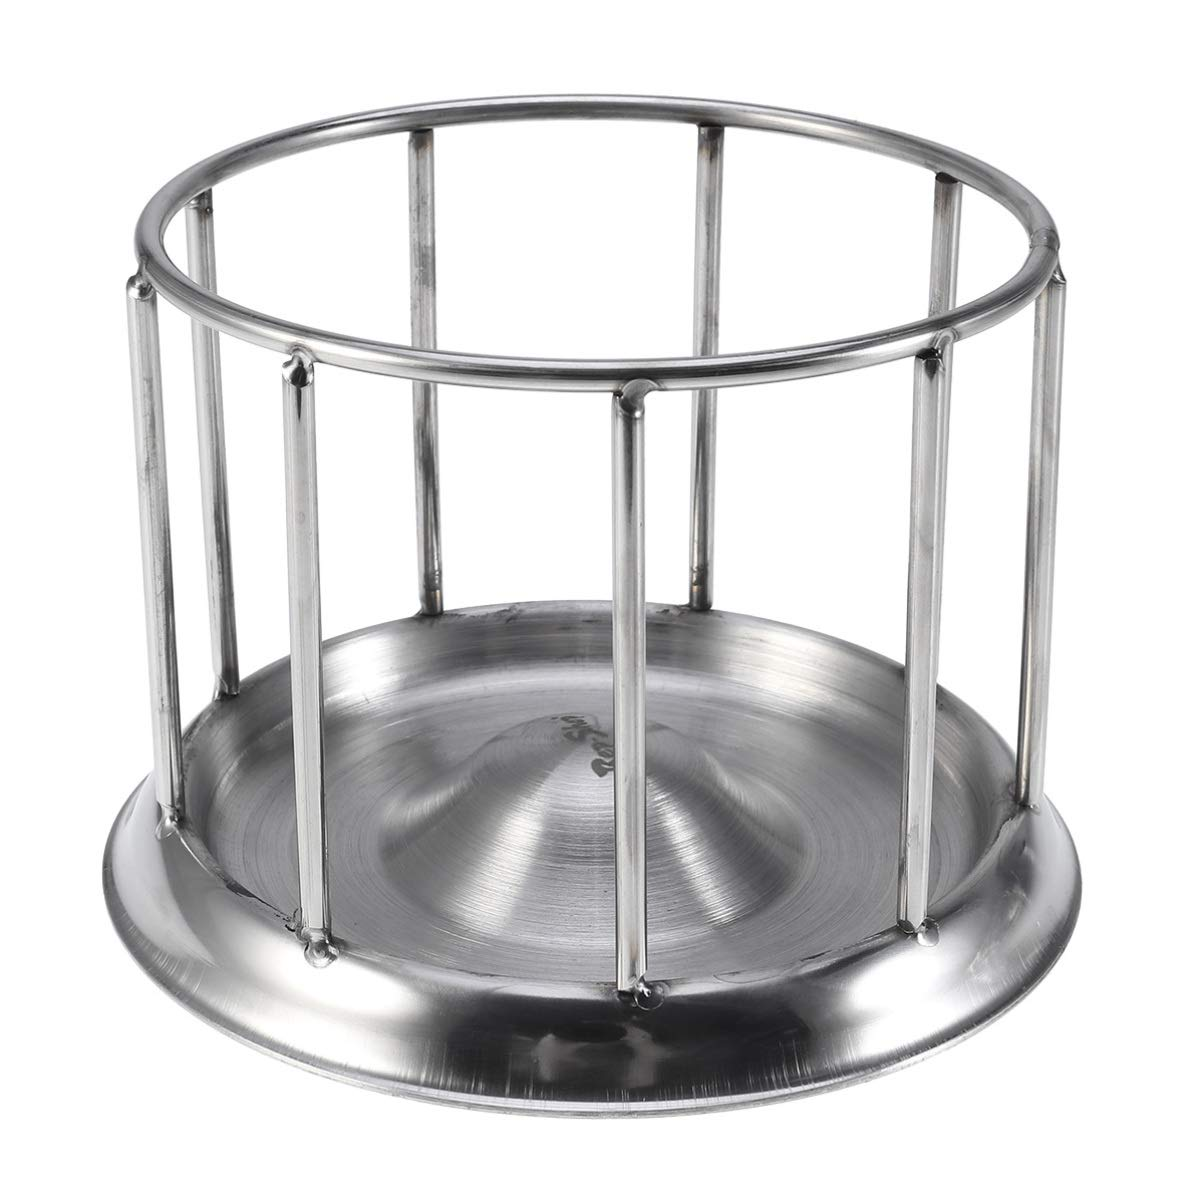 Balacoo Tortoise Water and Foot Bowl Stainless Steel Pet Feeding Tray (L) by Balacoo